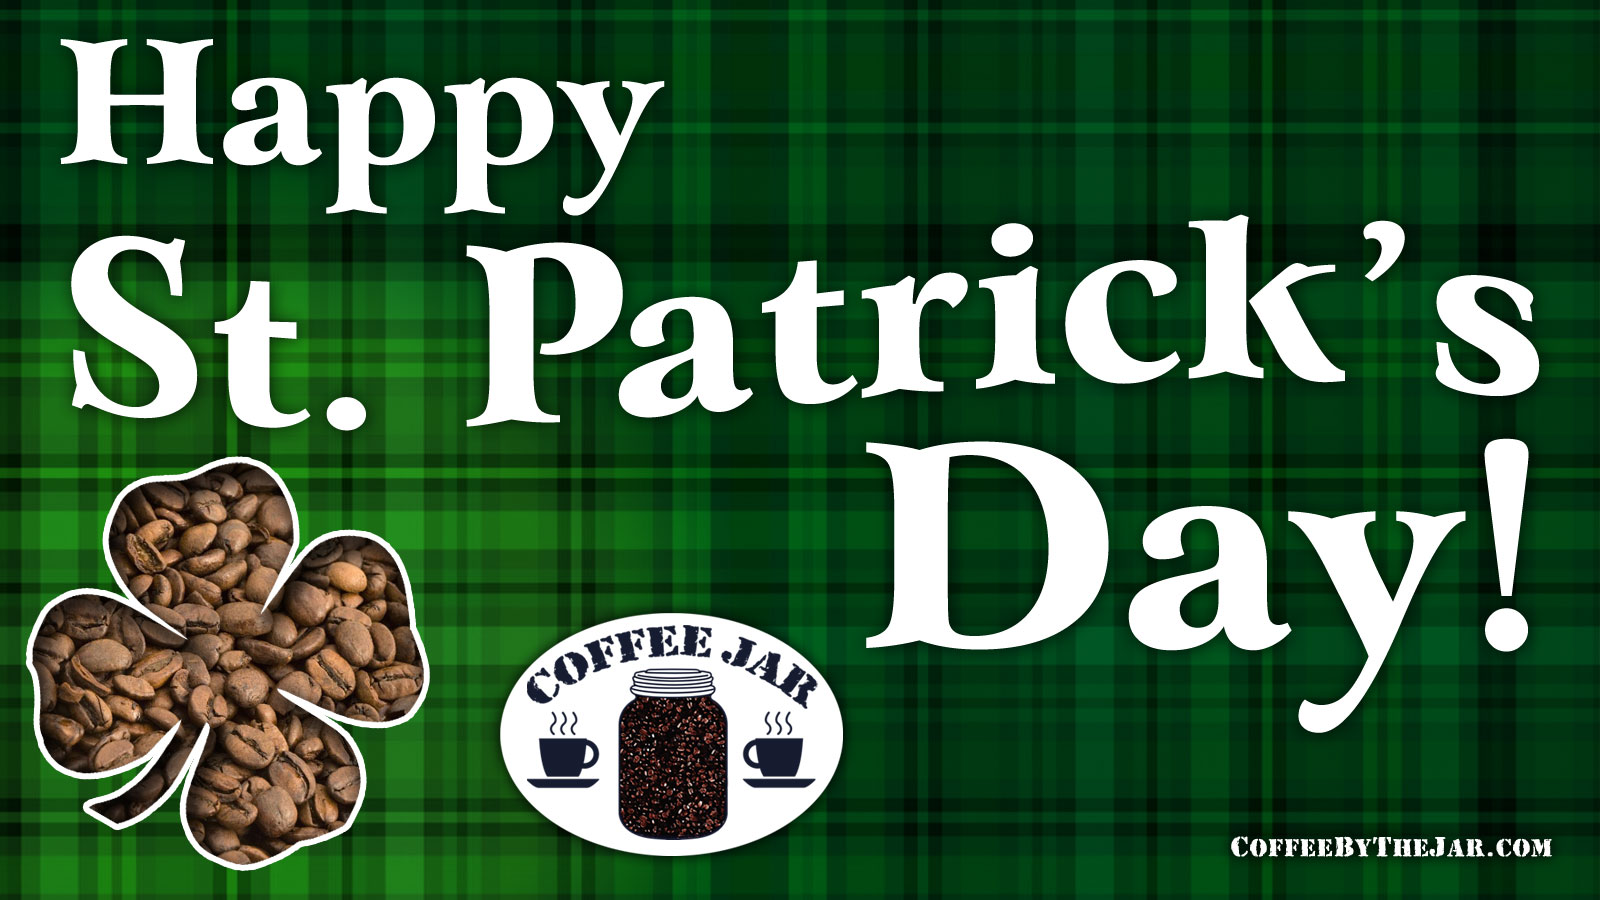 Coffee-Jar-St-Patricks-Day-wallpaper02-1600x900